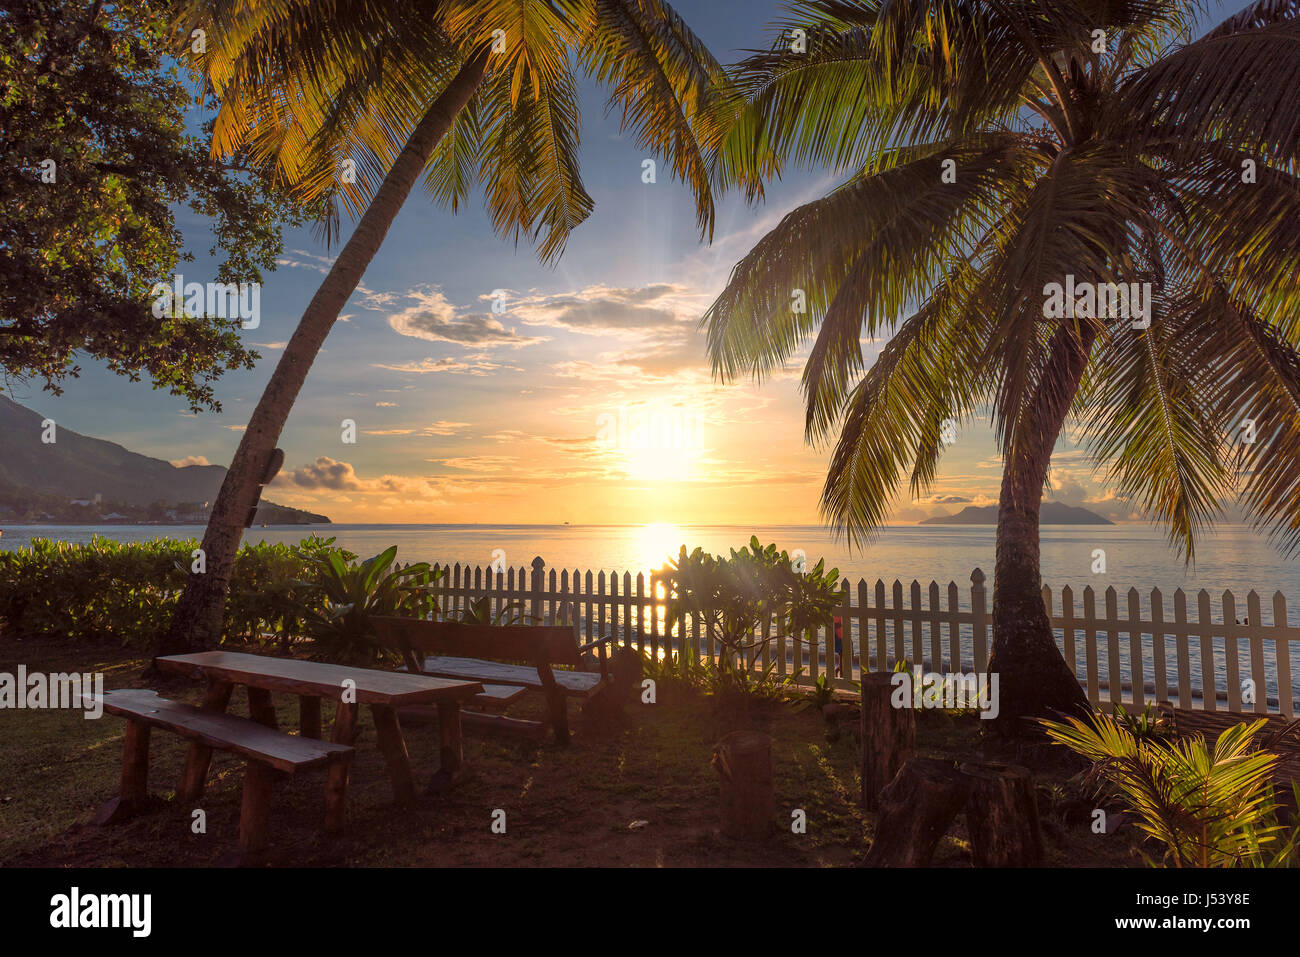 Romantic sunset on the shore of a tropical island - Stock Image